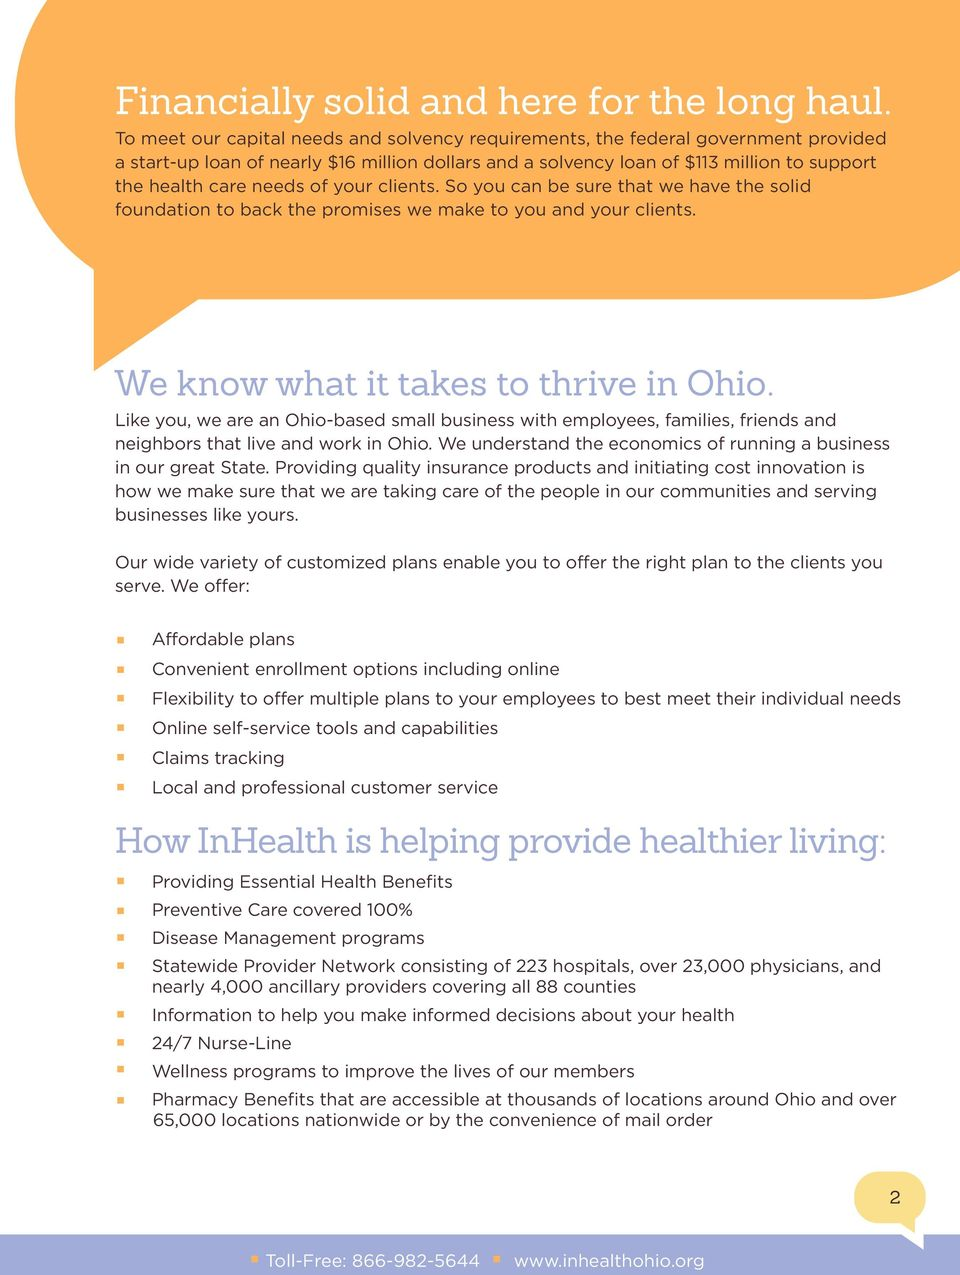 of your clients. So you can be sure that we have the solid foundation to back the promises we make to you and your clients. We know what it takes to thrive in Ohio.